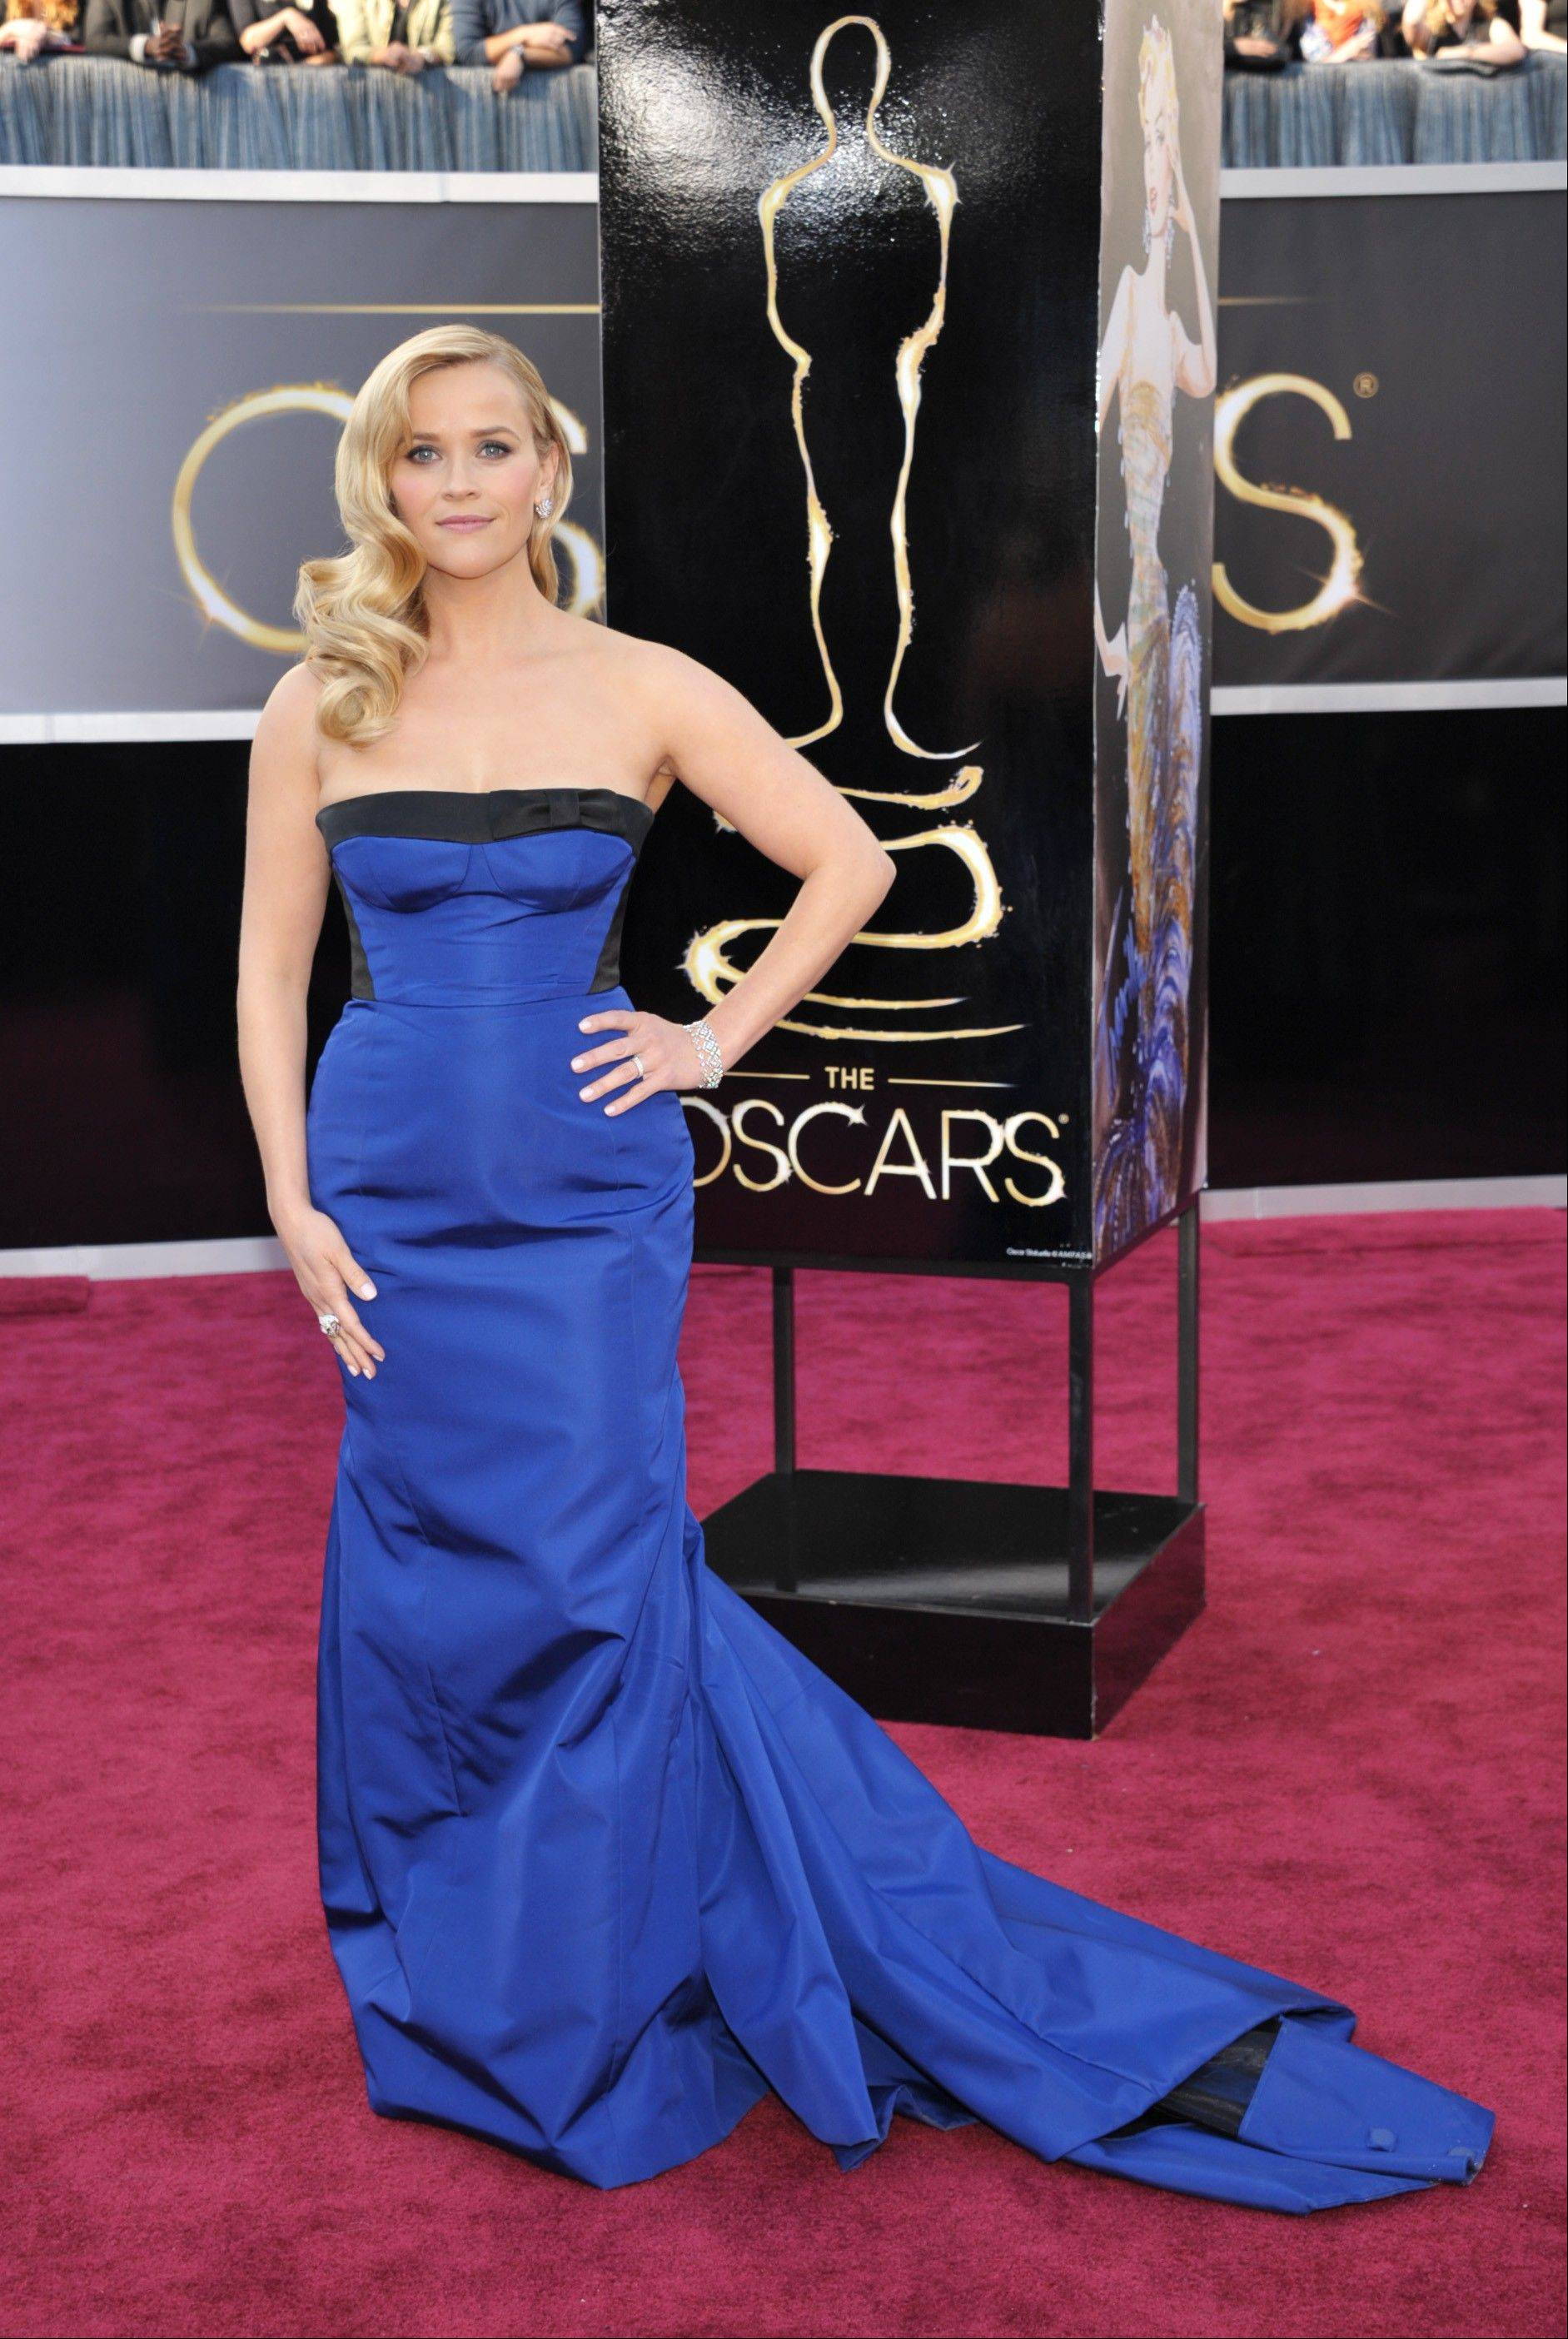 Reese Witherspoon arrives at the 85th Academy Awards at the Dolby Theatre on Sunday in Los Angeles.